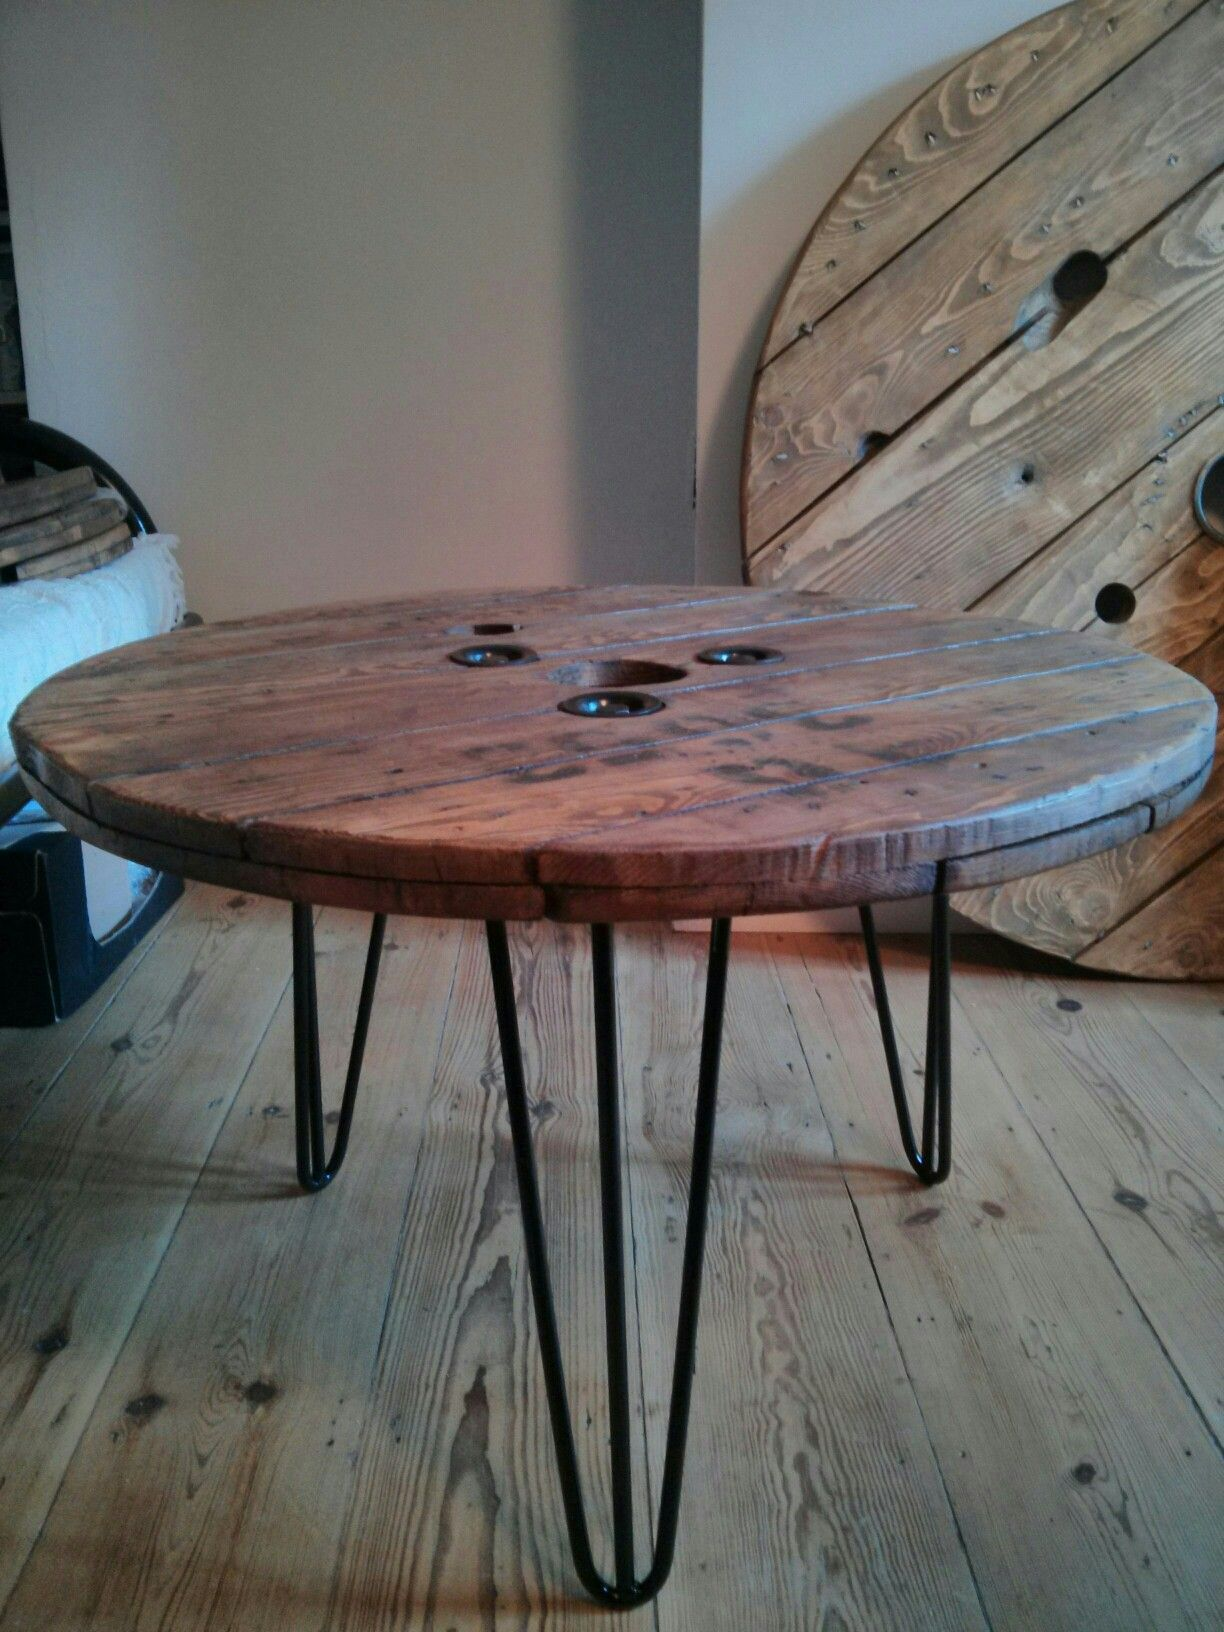 10 Plus Luxury Hairpin Leg Stool (With images) Coffee